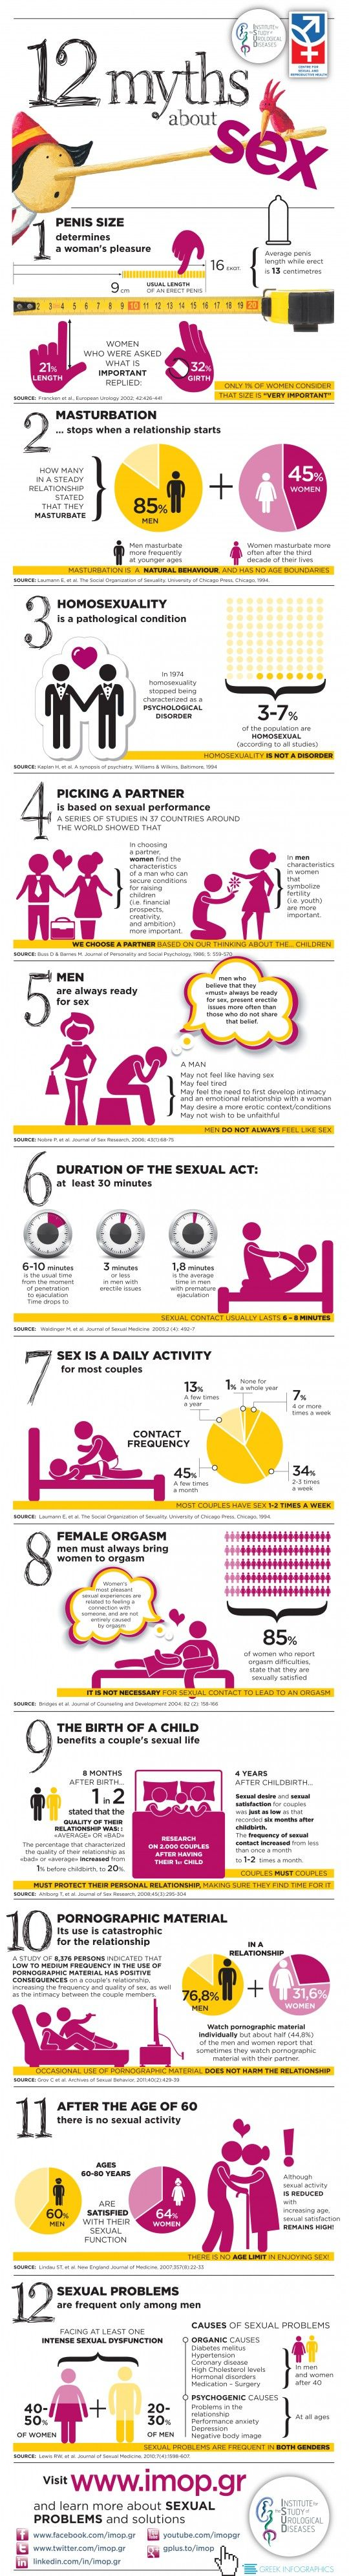 12 Myths about Sex and Is Your Vibrator Toxic? by LoseIT Tea at loseittea.com